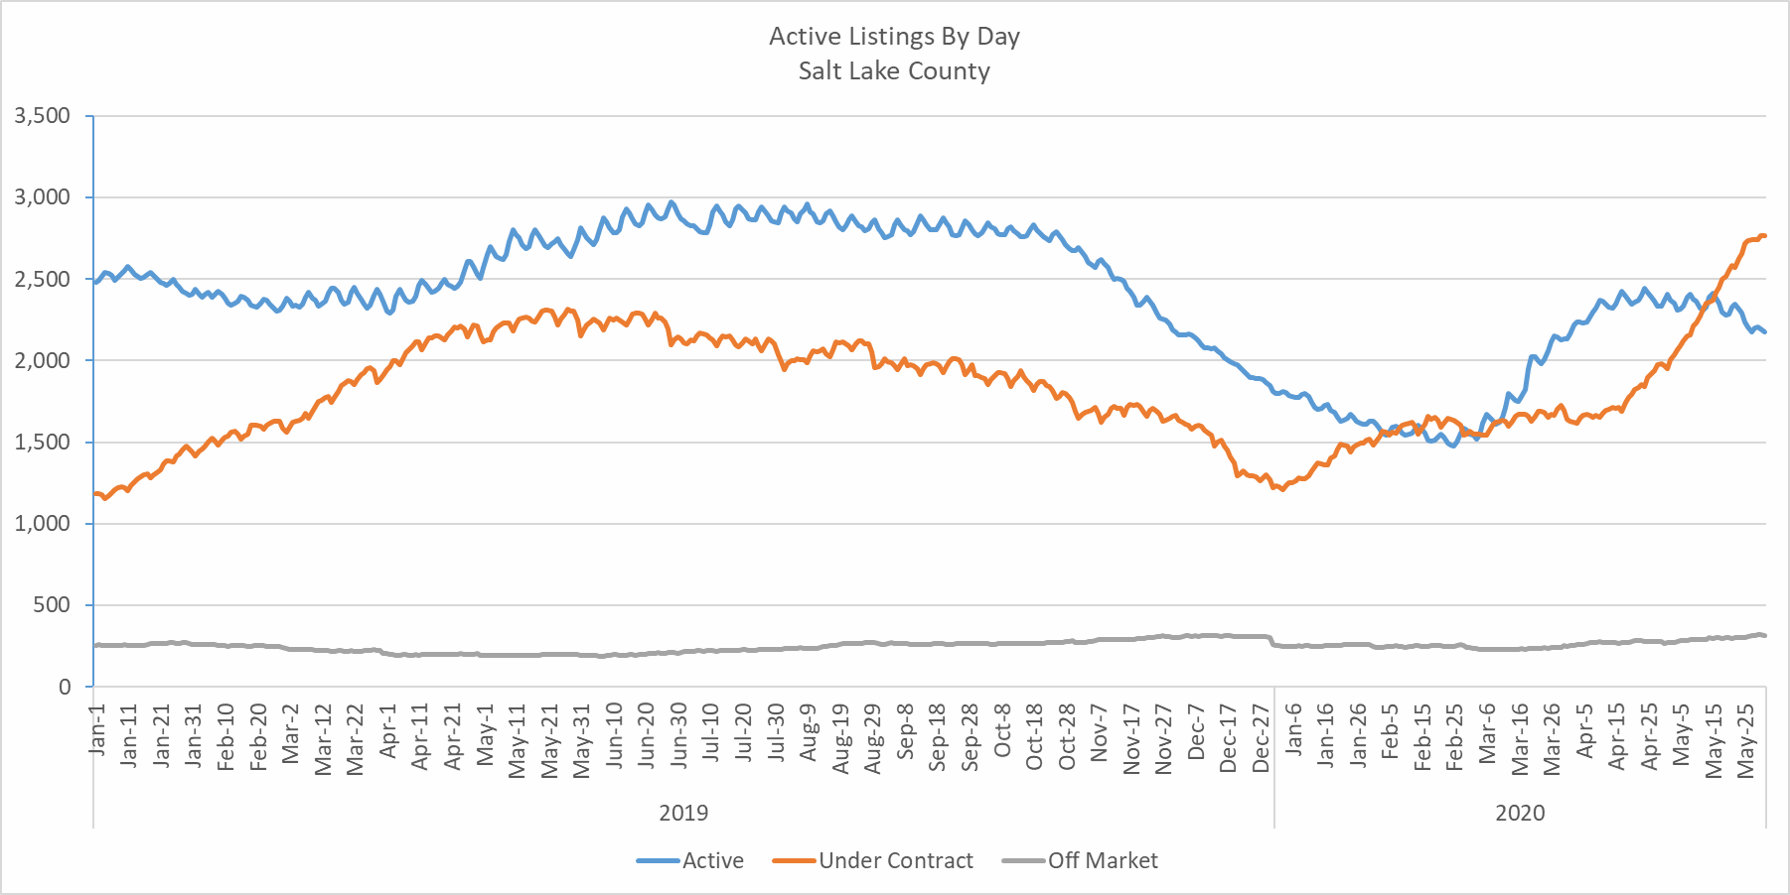 Active and Under Contract Listings